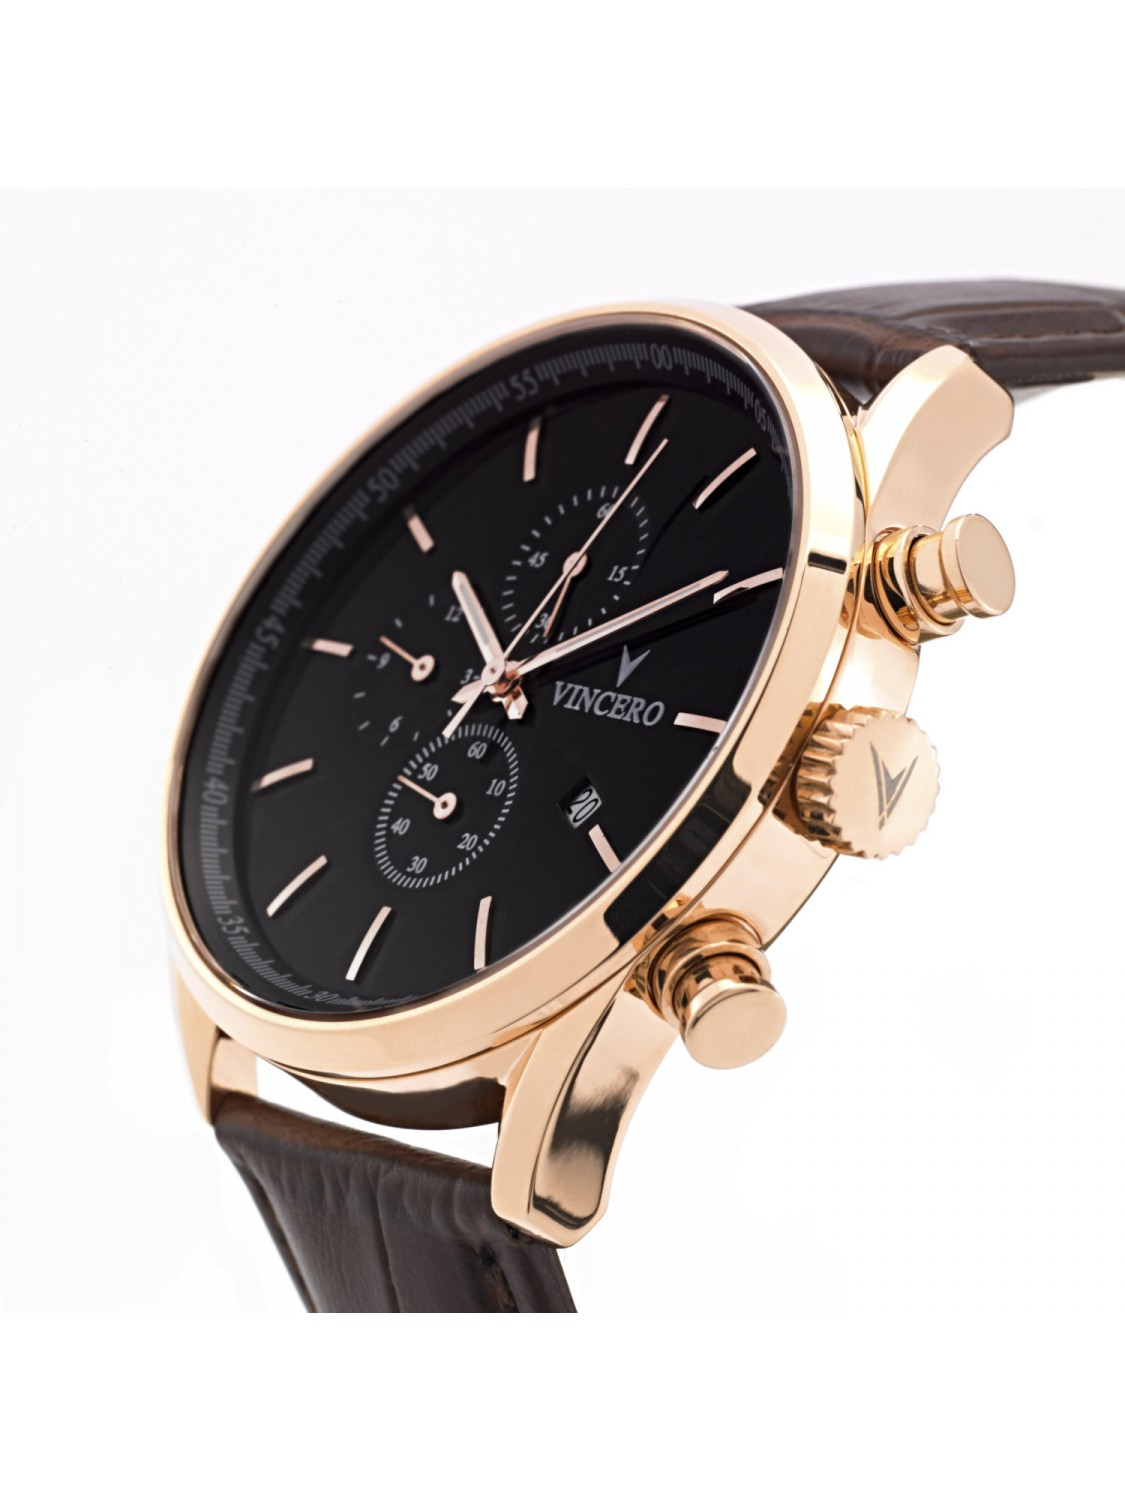 Vincero Chrono S Rose Gold-31